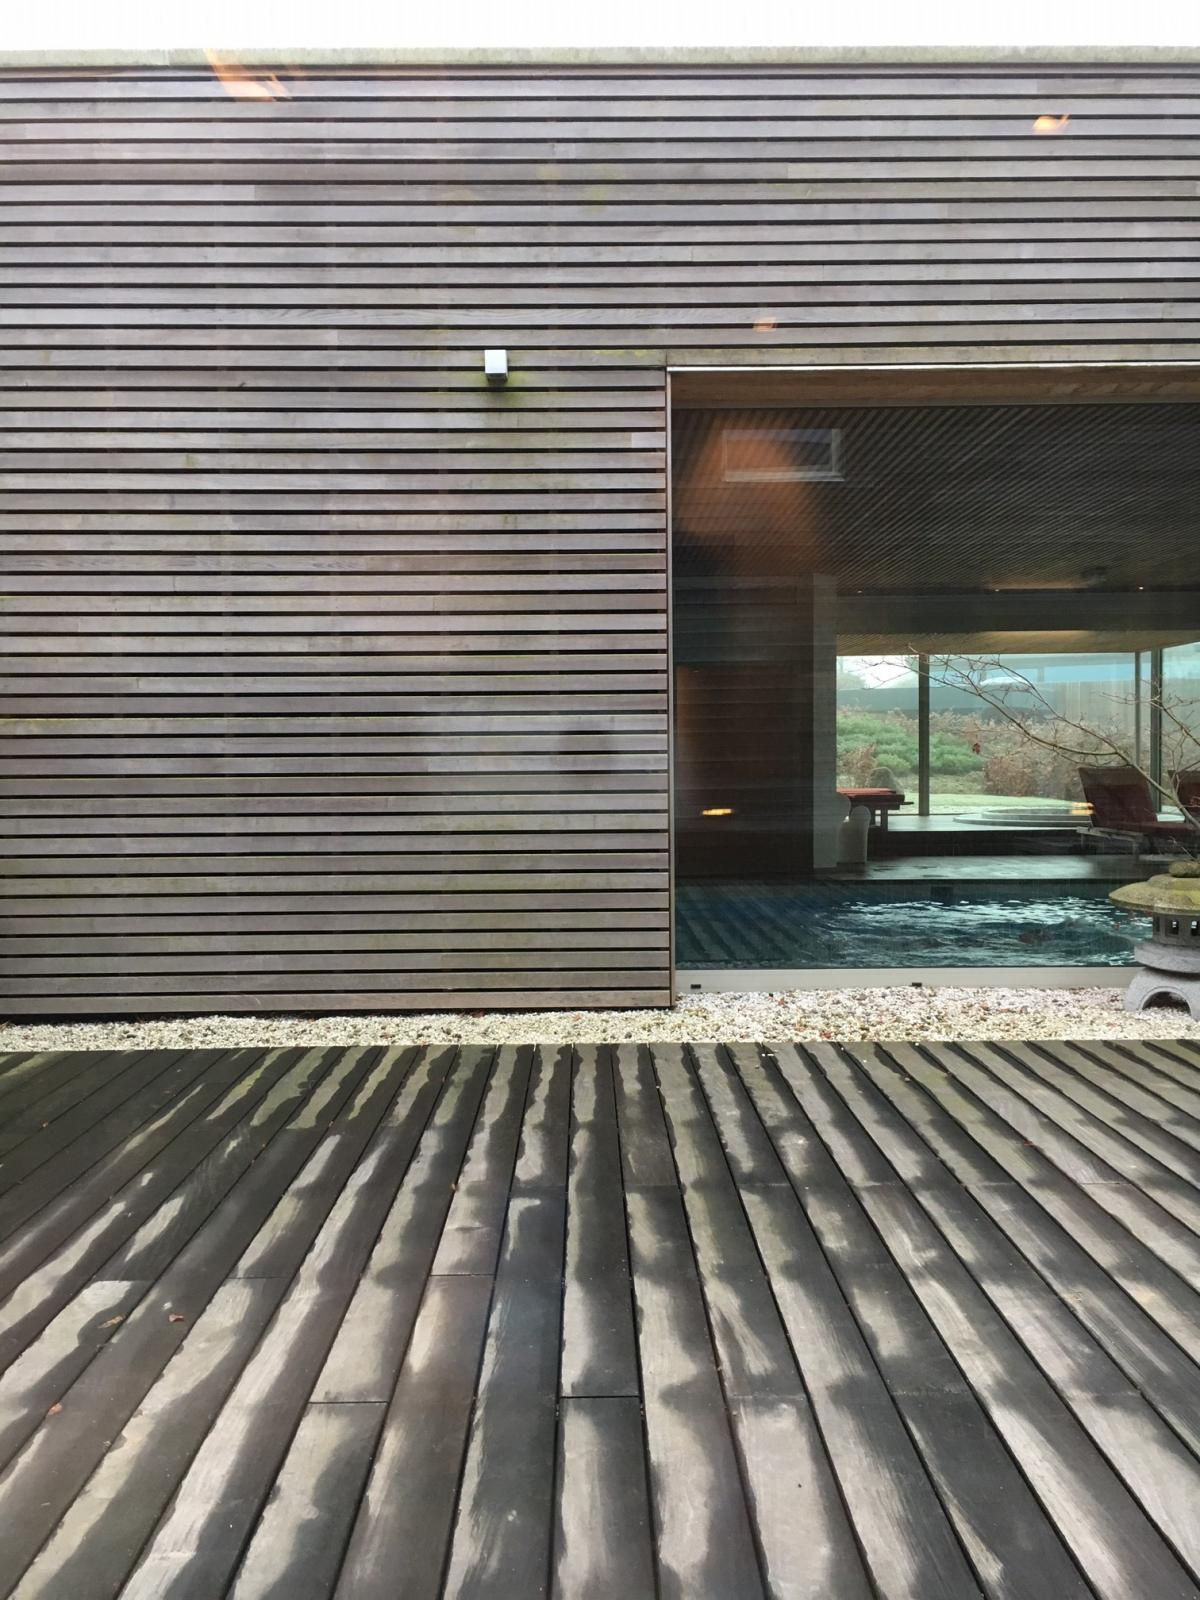 The Nuxe Spa has a Japanese feel